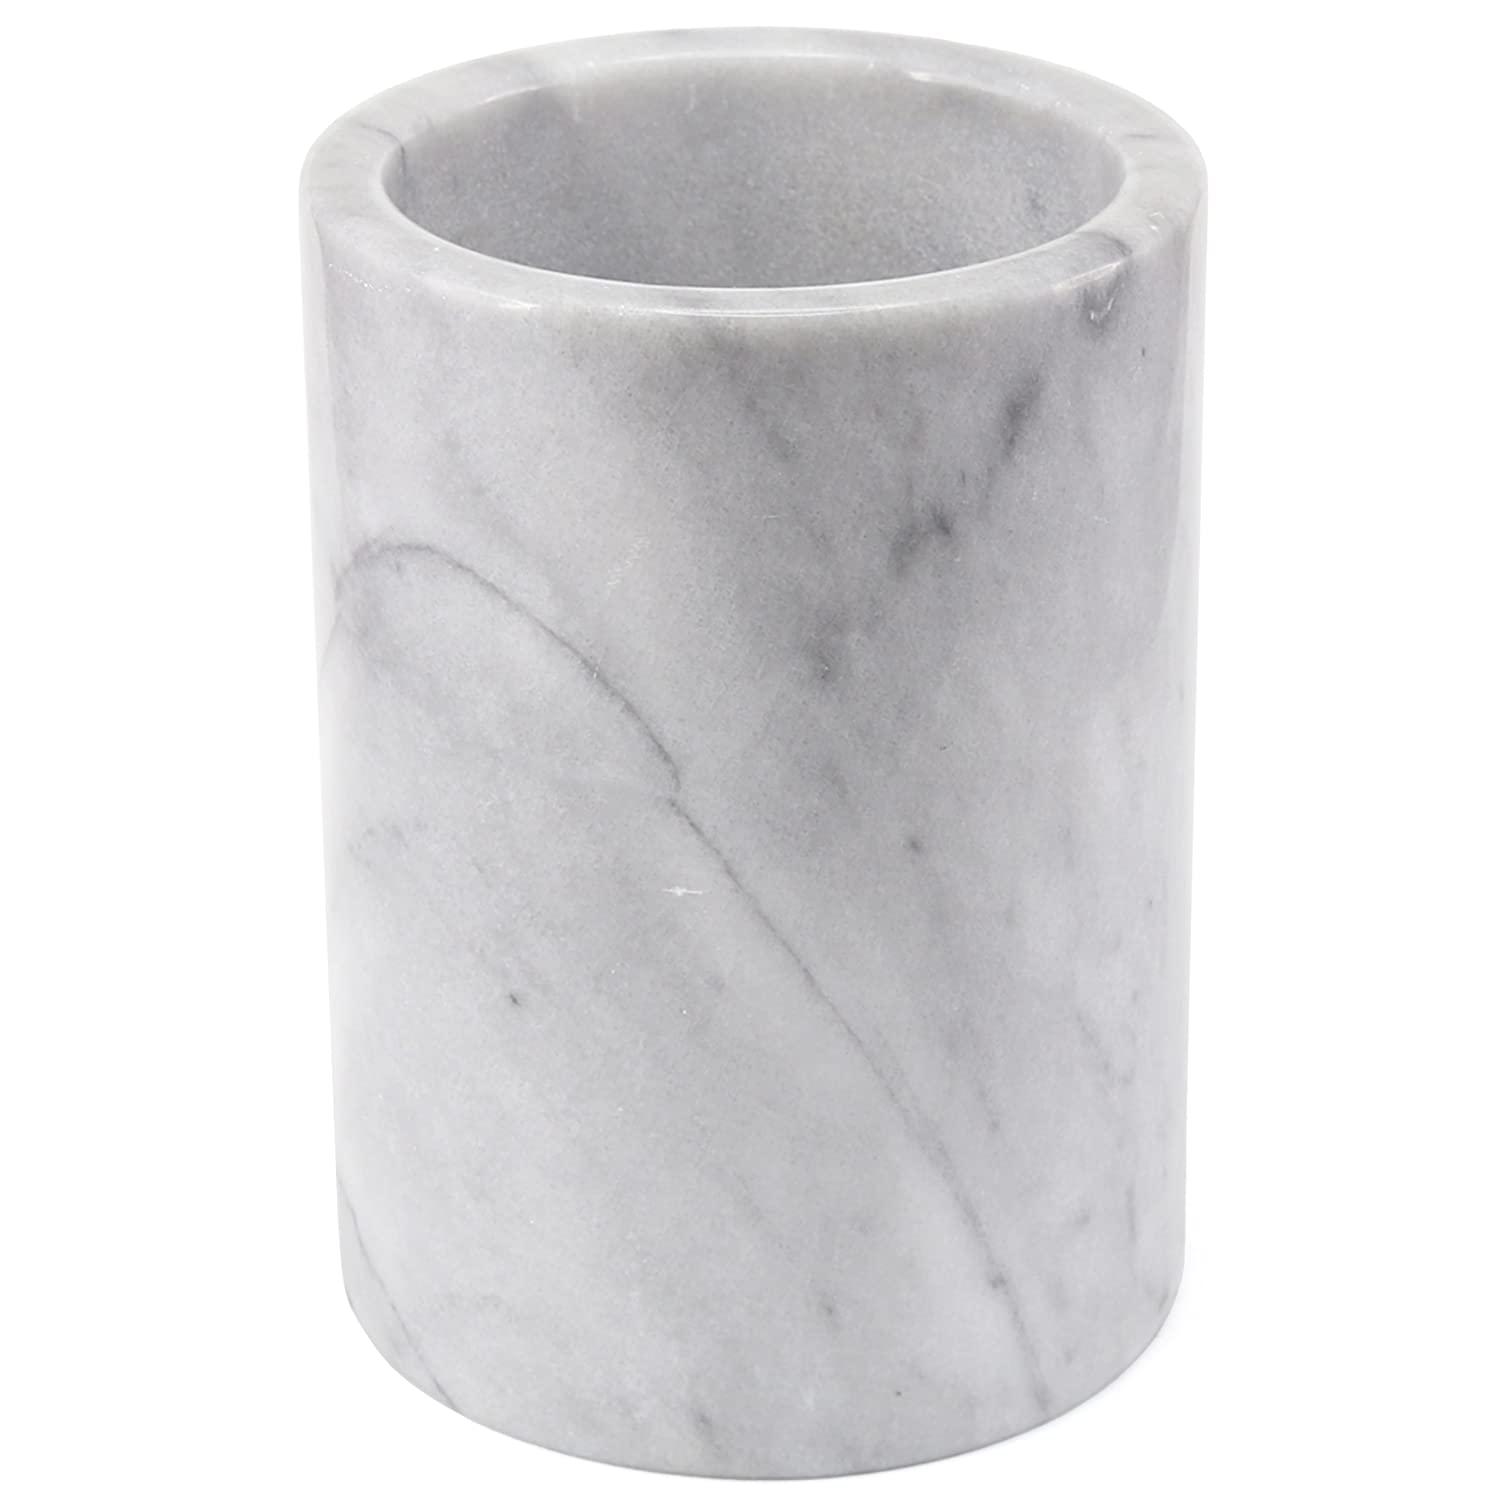 Marble utensil holder - Come explore Serene Decor Slow Living as well as Small Thoughtful Changes at Home.